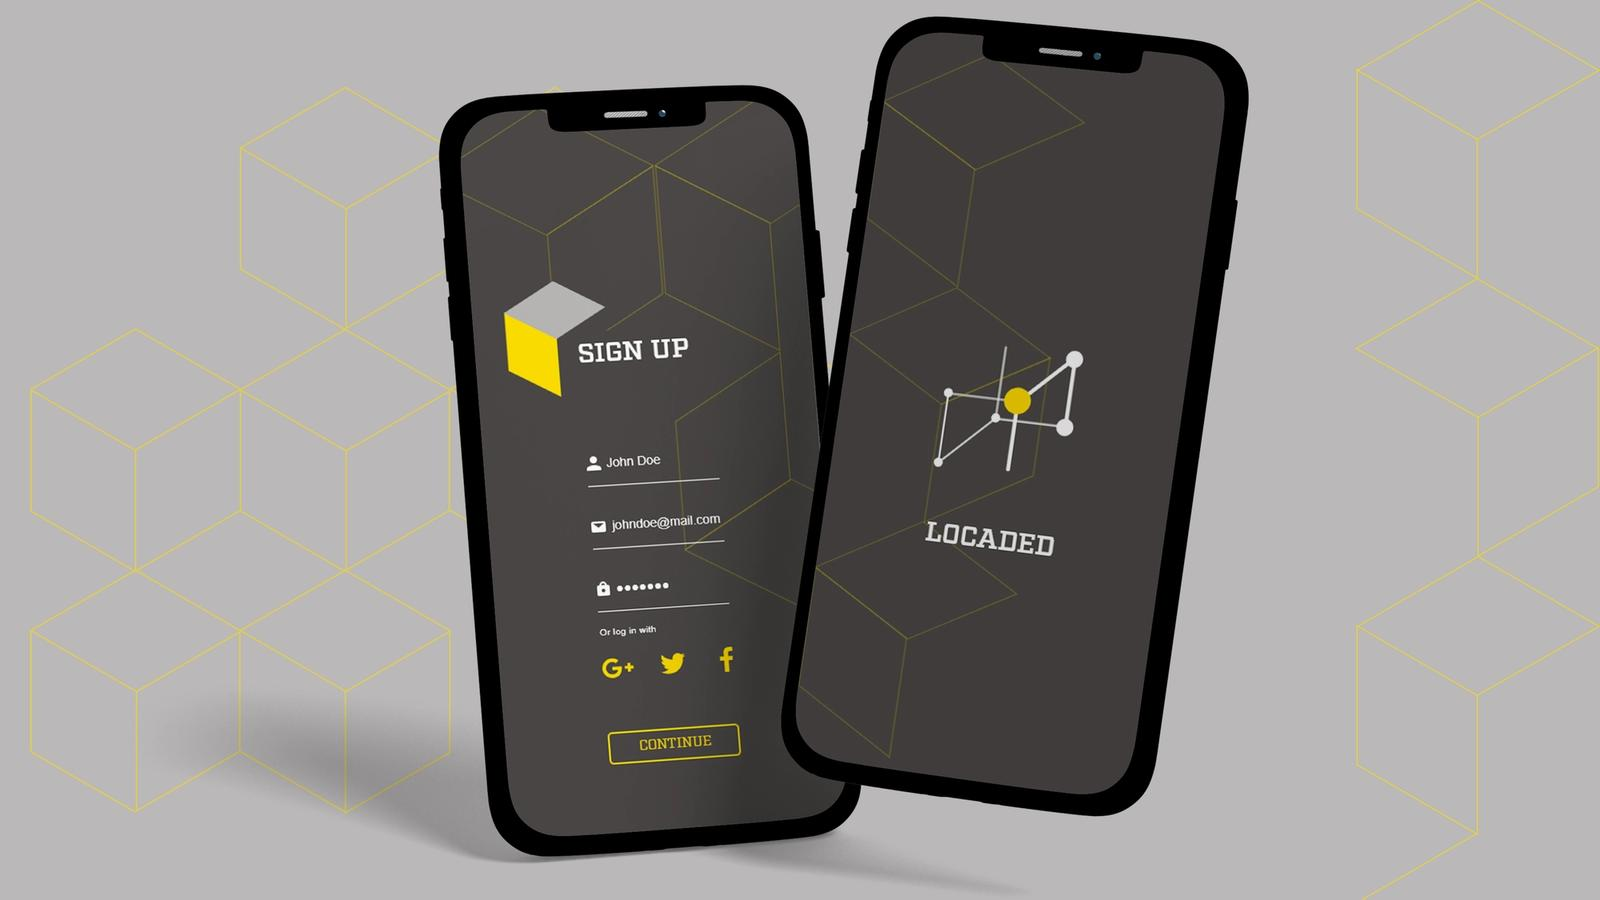 Locaded Mobile Application // MFA Thesis Project